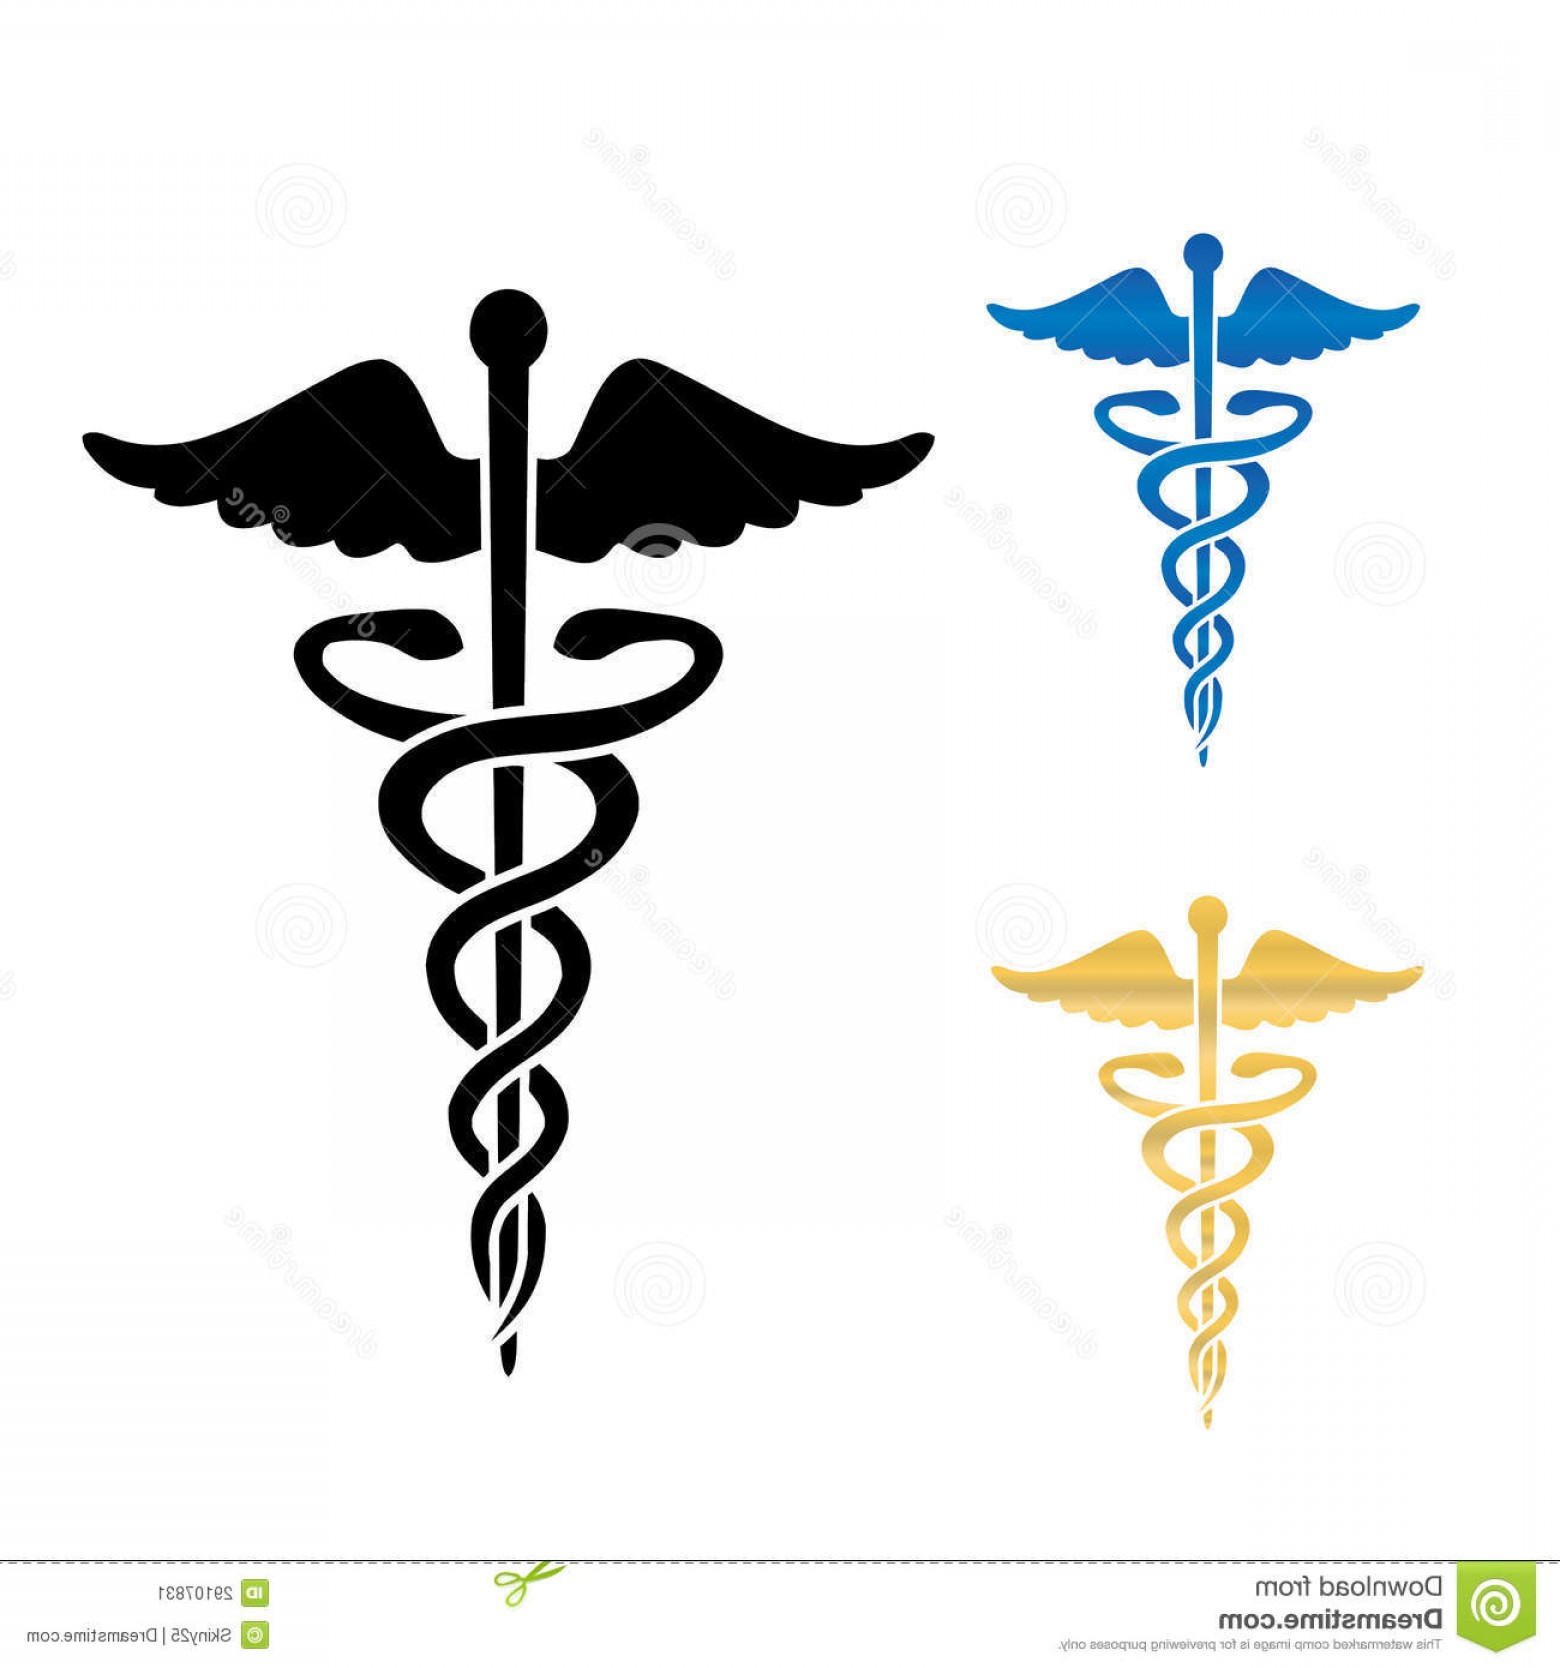 Medical Scepter Vector: Stock Image Caduceus Medical Symbol Vector Illustration Image